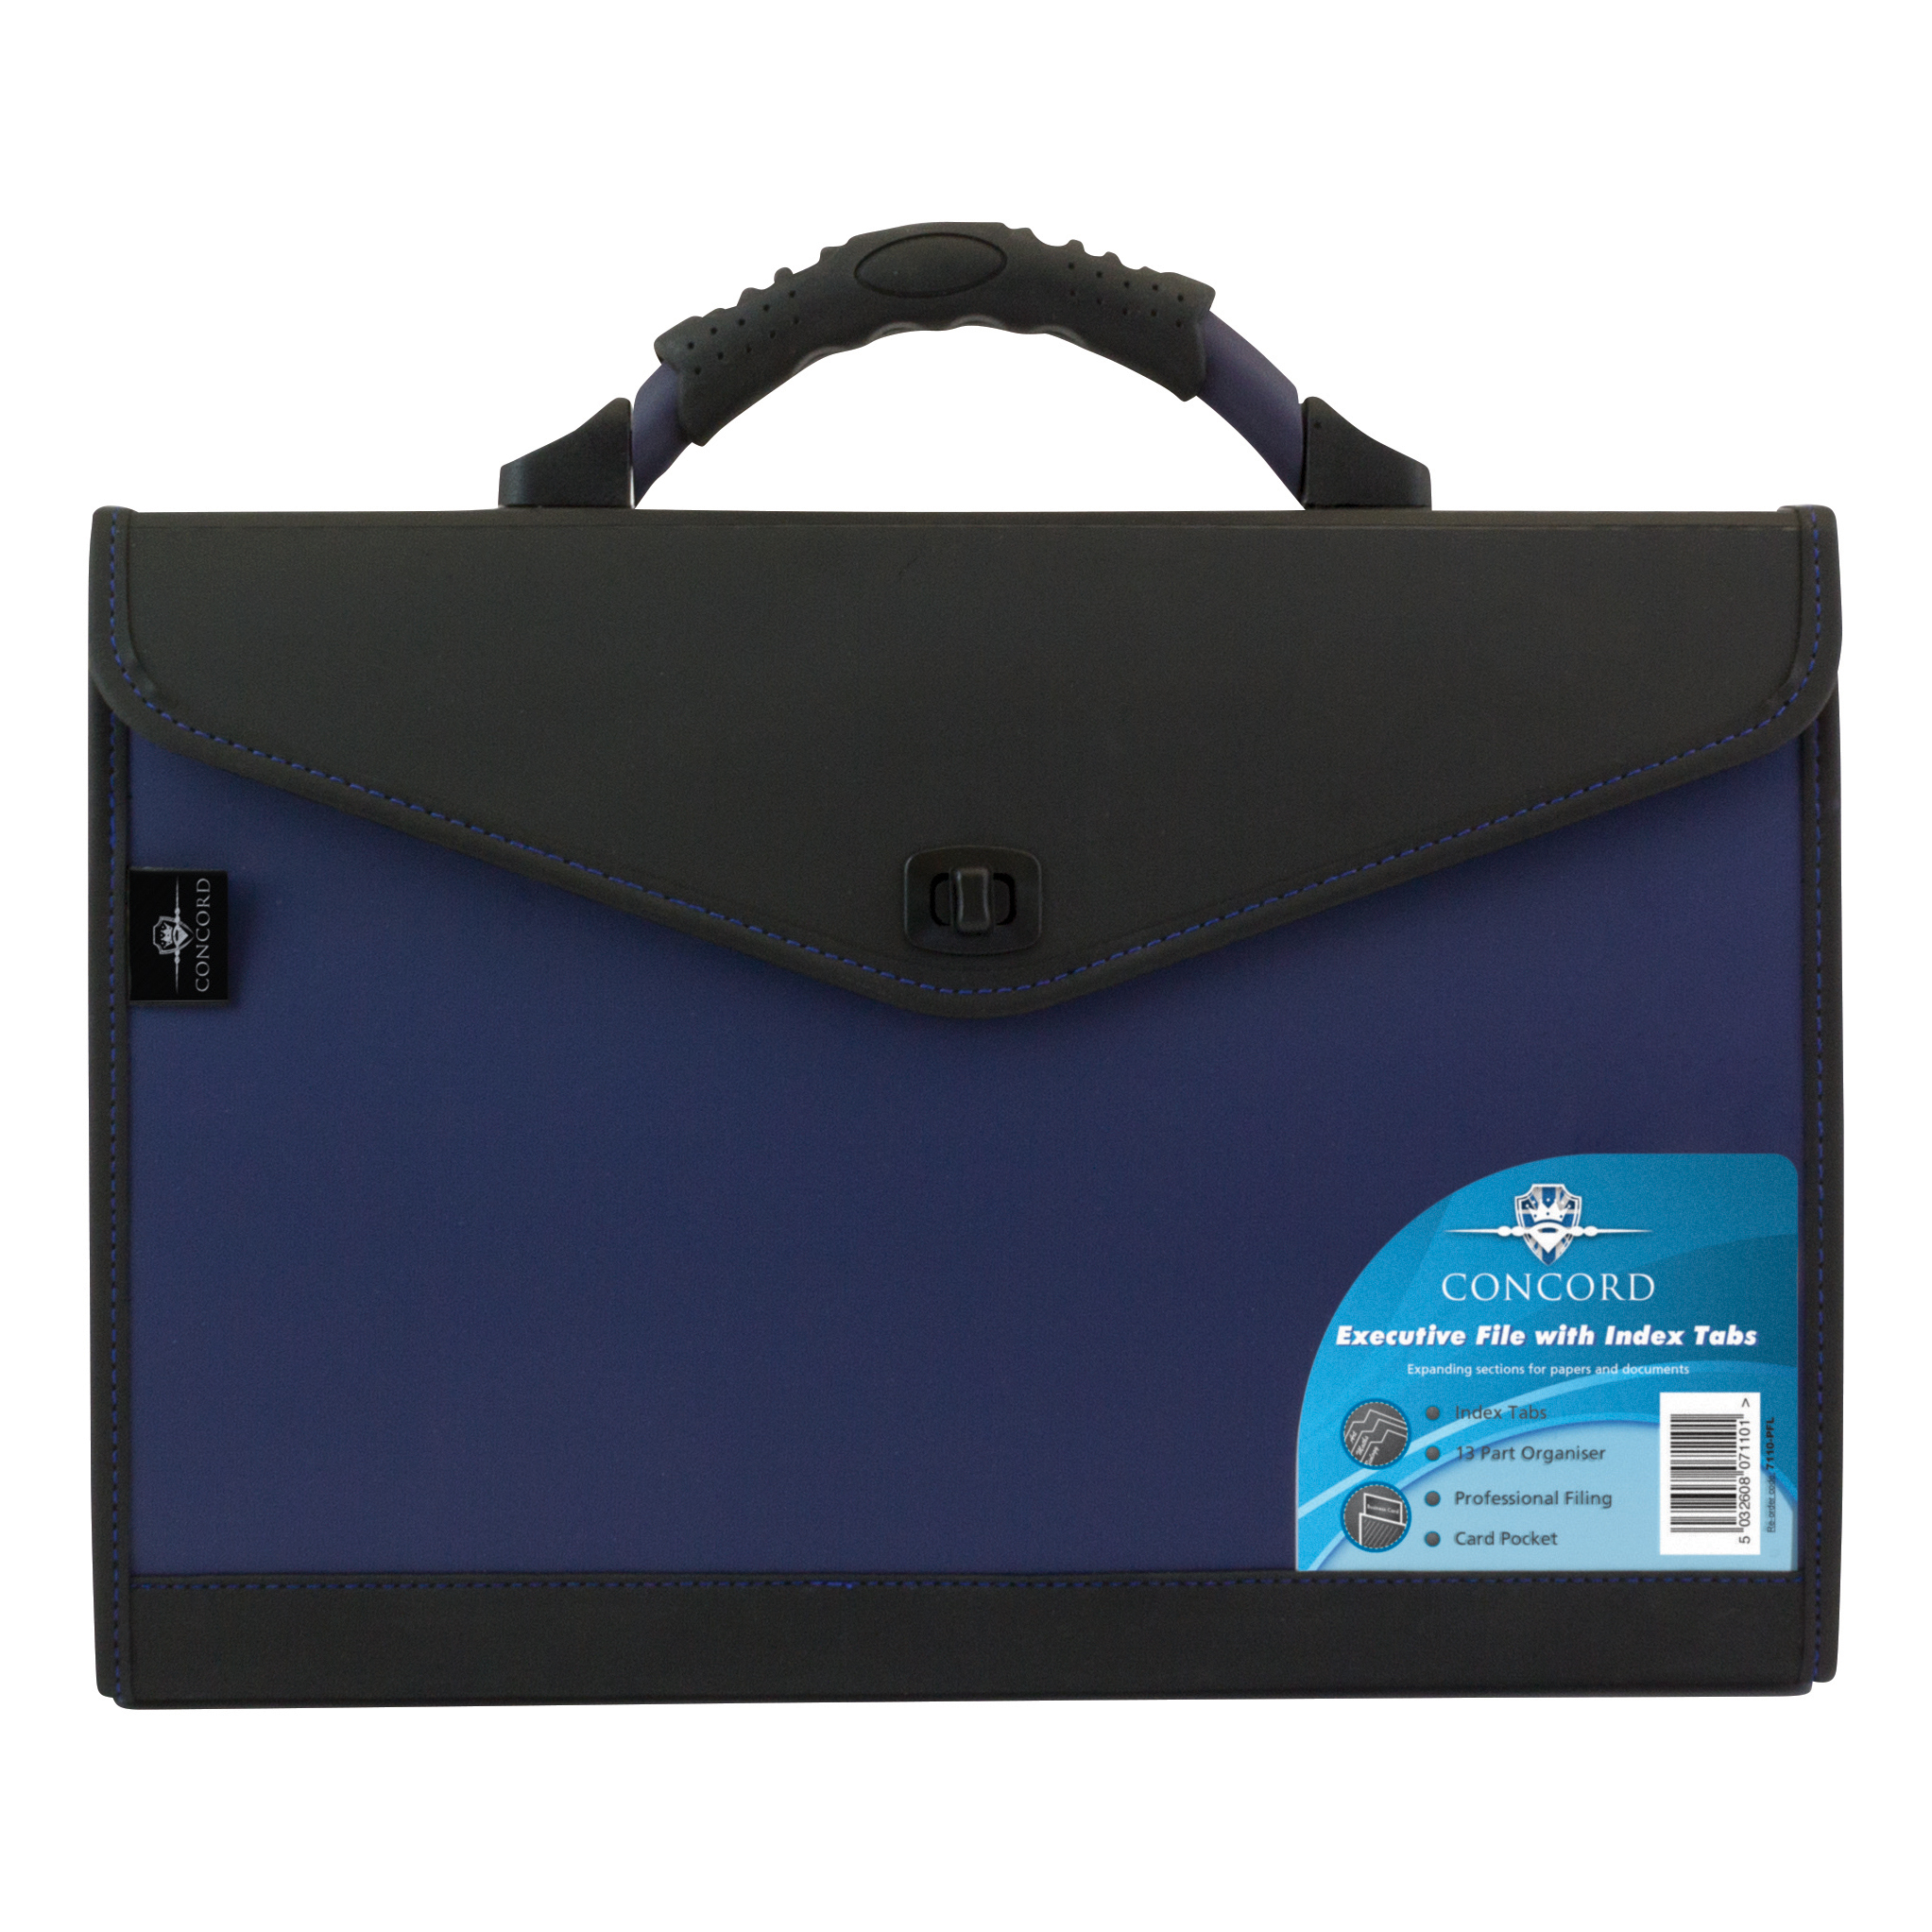 Concord Expanding Organiser File Polypropylene 13 Part Foolscap Blue and Black Ref 7110-PFL